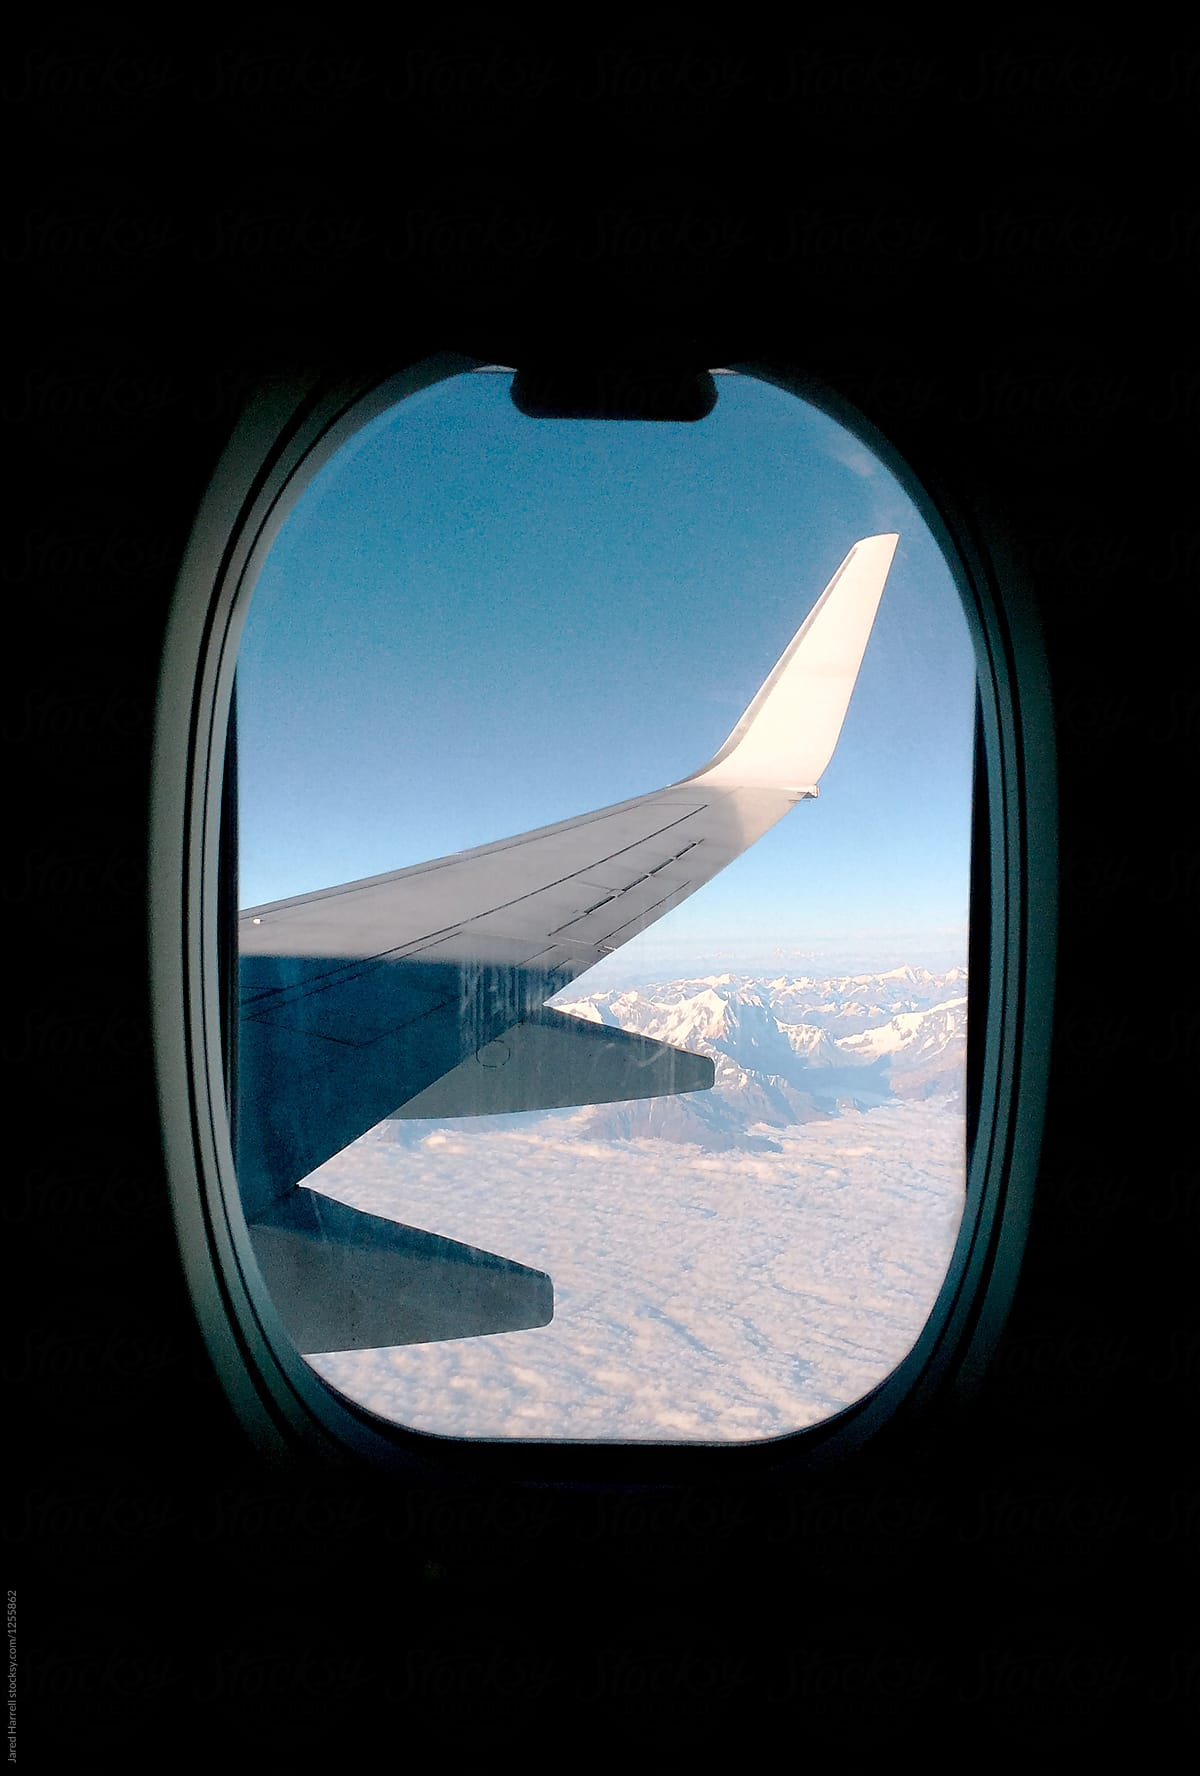 Airplane Window View Of The Himalayas In Nepal By Jared Harrell